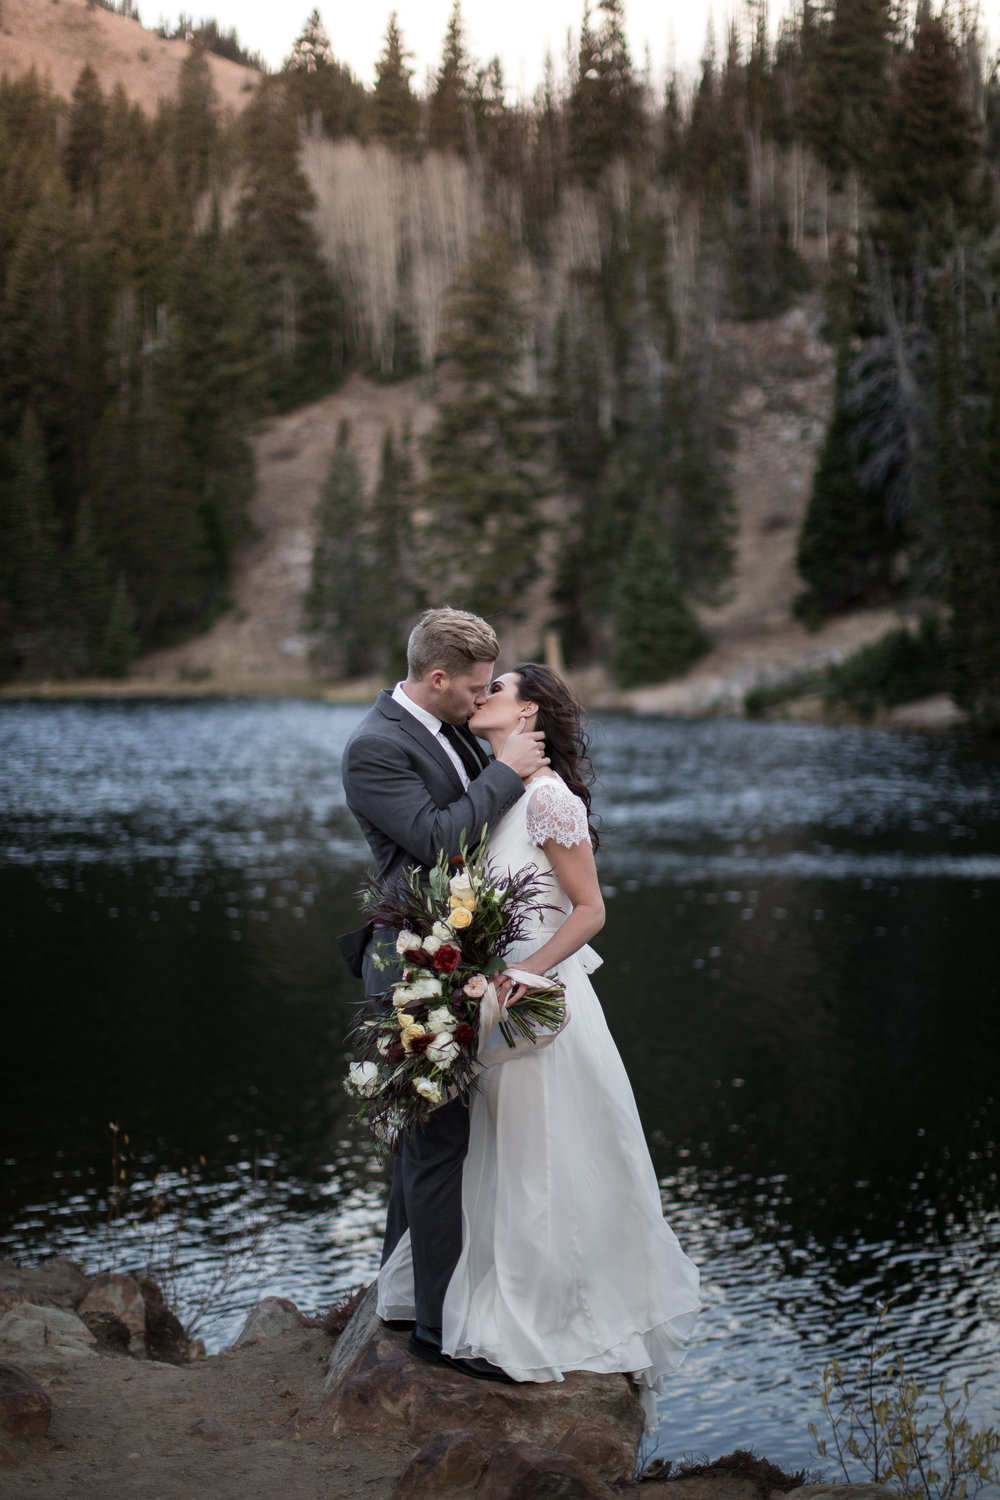 UtahValleyBrideShootTR2016 (37 of 110).jpg